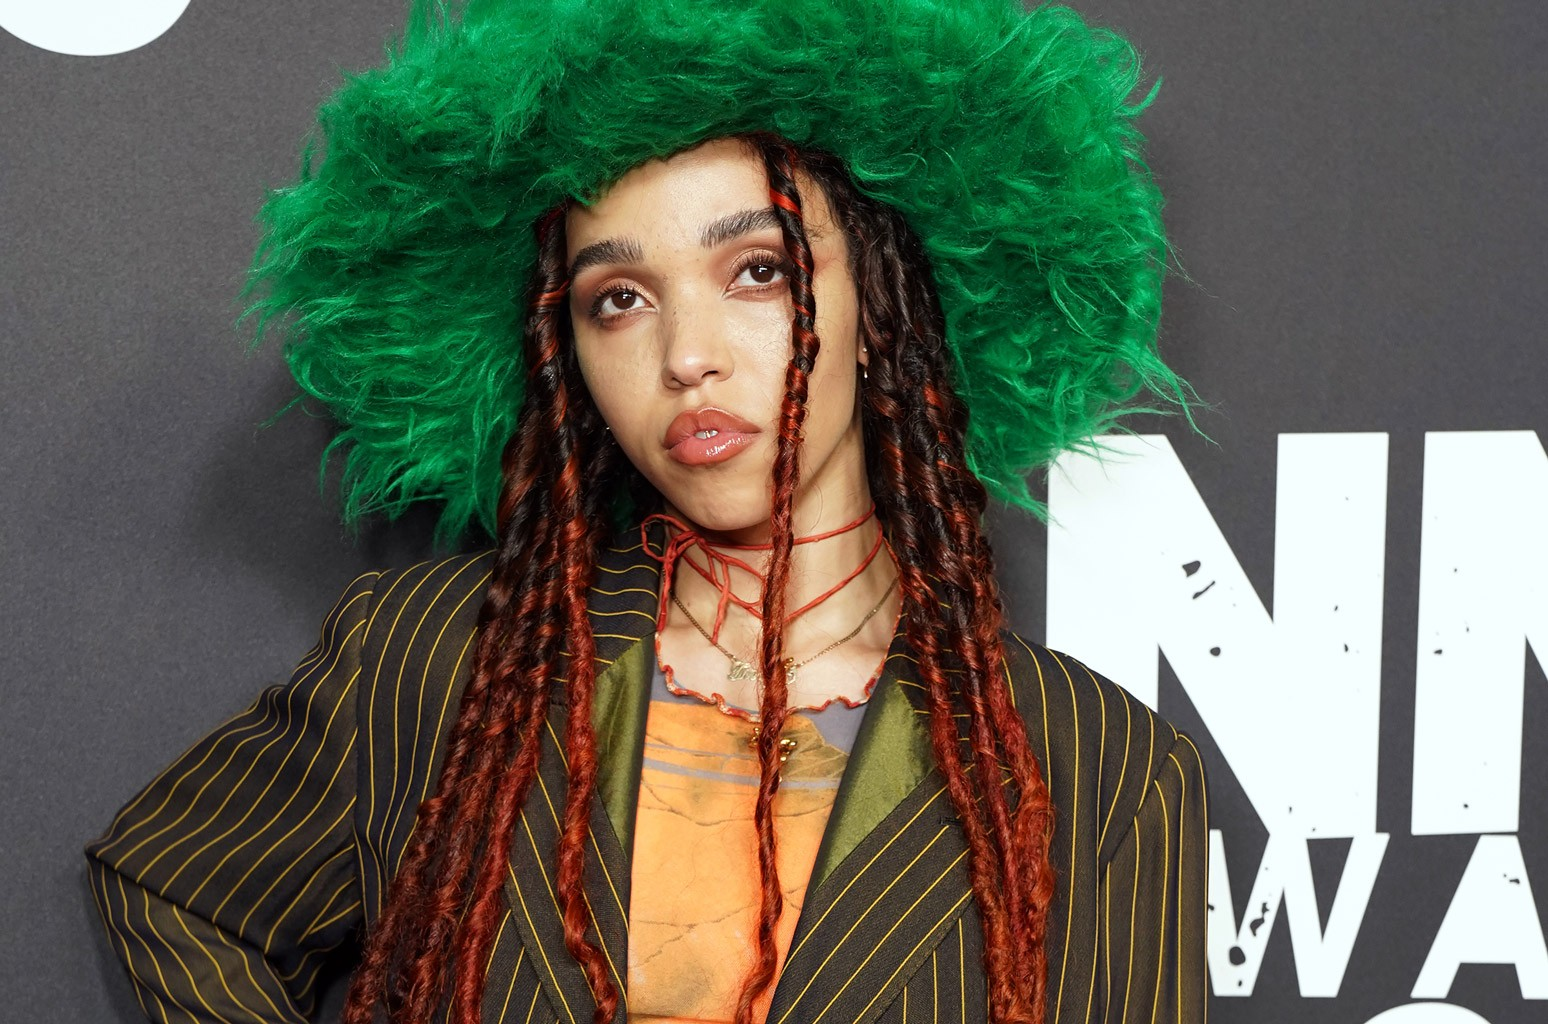 FKA twigs Sues Shia LaBeouf Over Claims of Sexual Battery, Abuse During Relationship